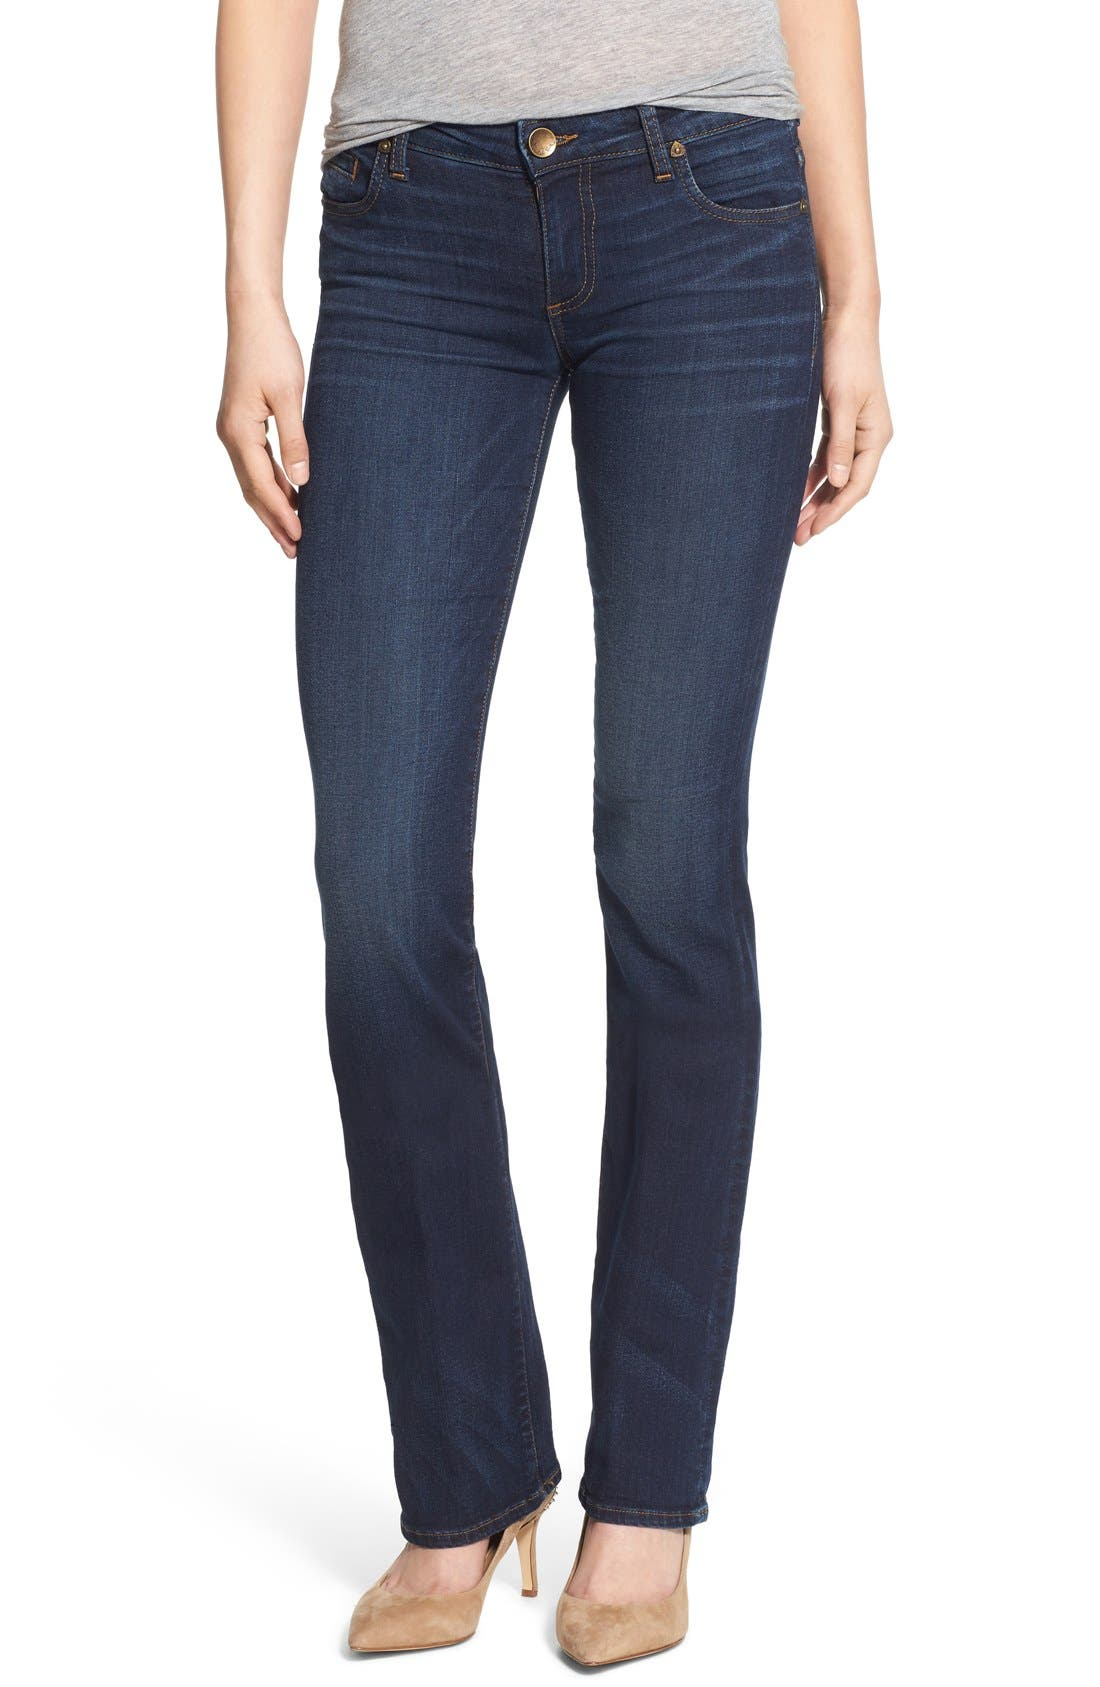 KUT from the Kloth 'Natalie' Stretch Bootleg Jeans (Closeness)